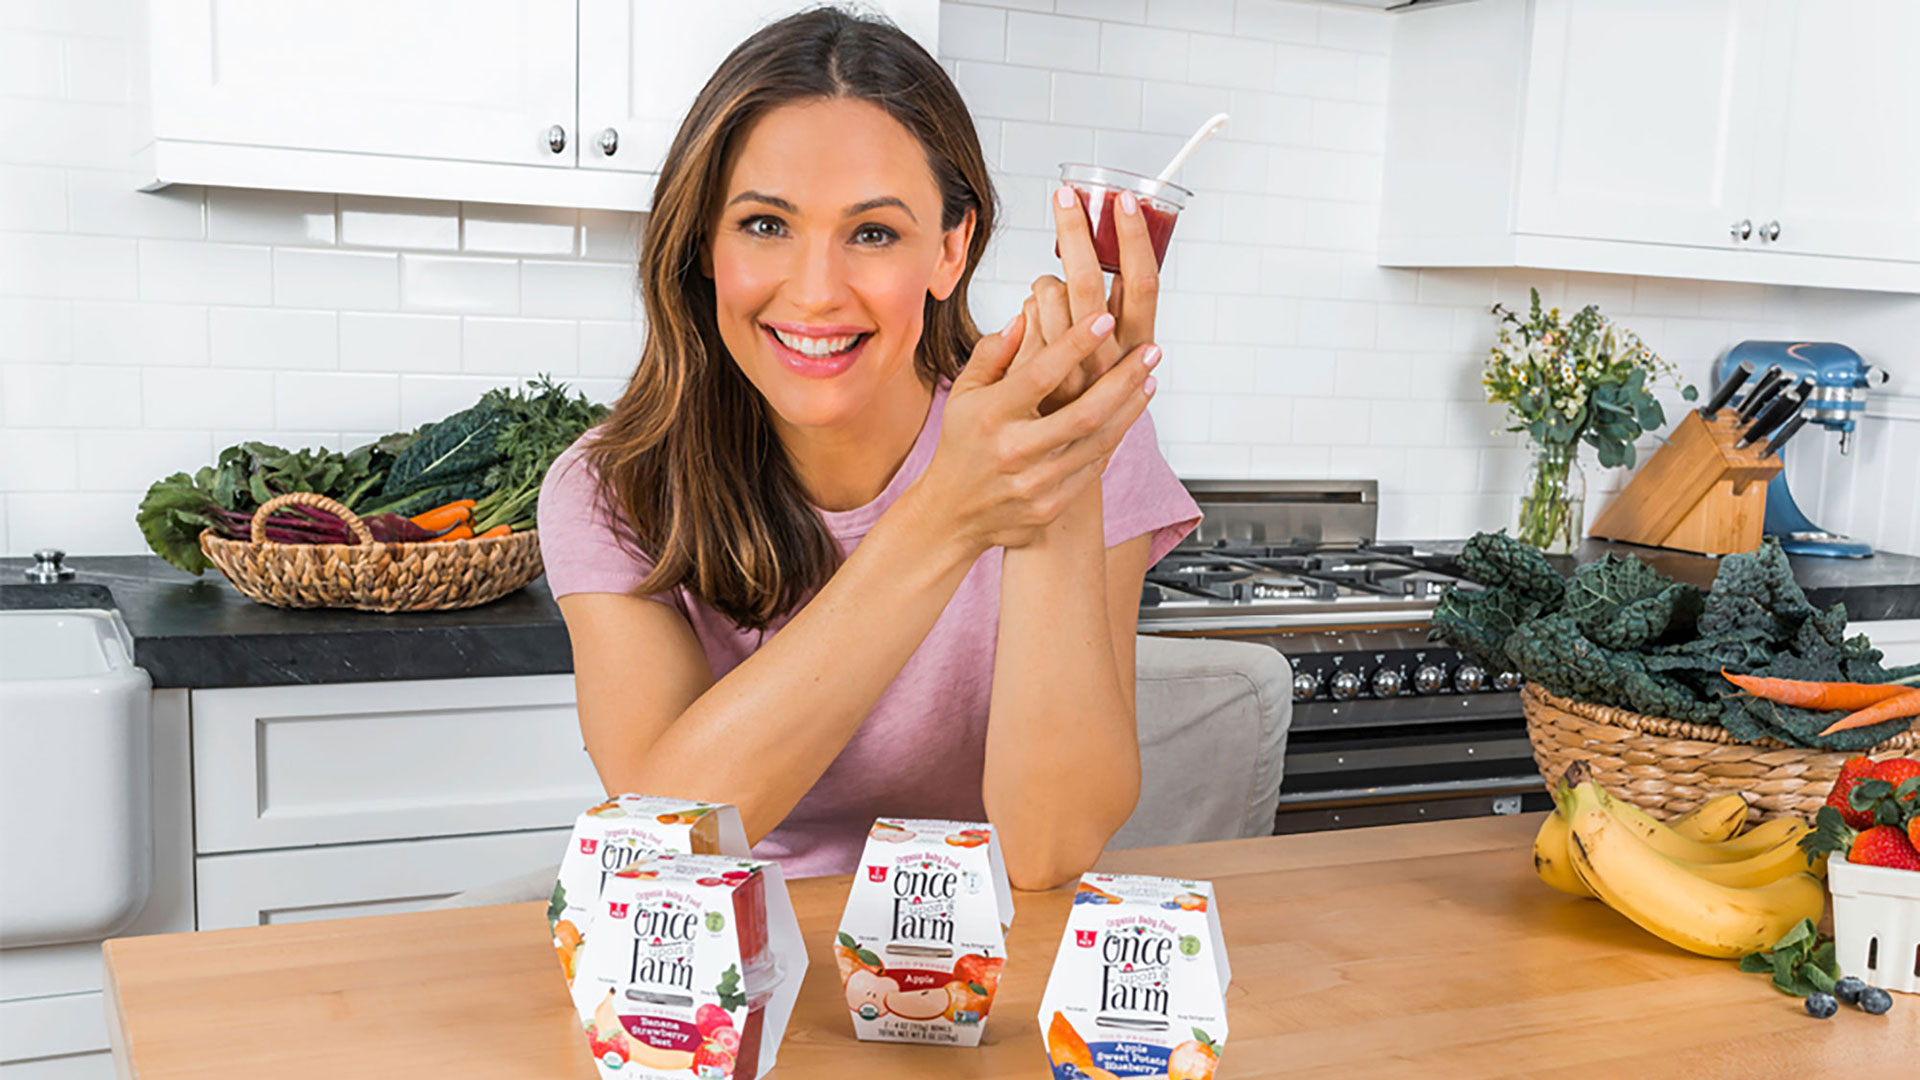 Jennifer Garner S Baby Food Line Once Upon A Farm Is Wic Approved Sheknows